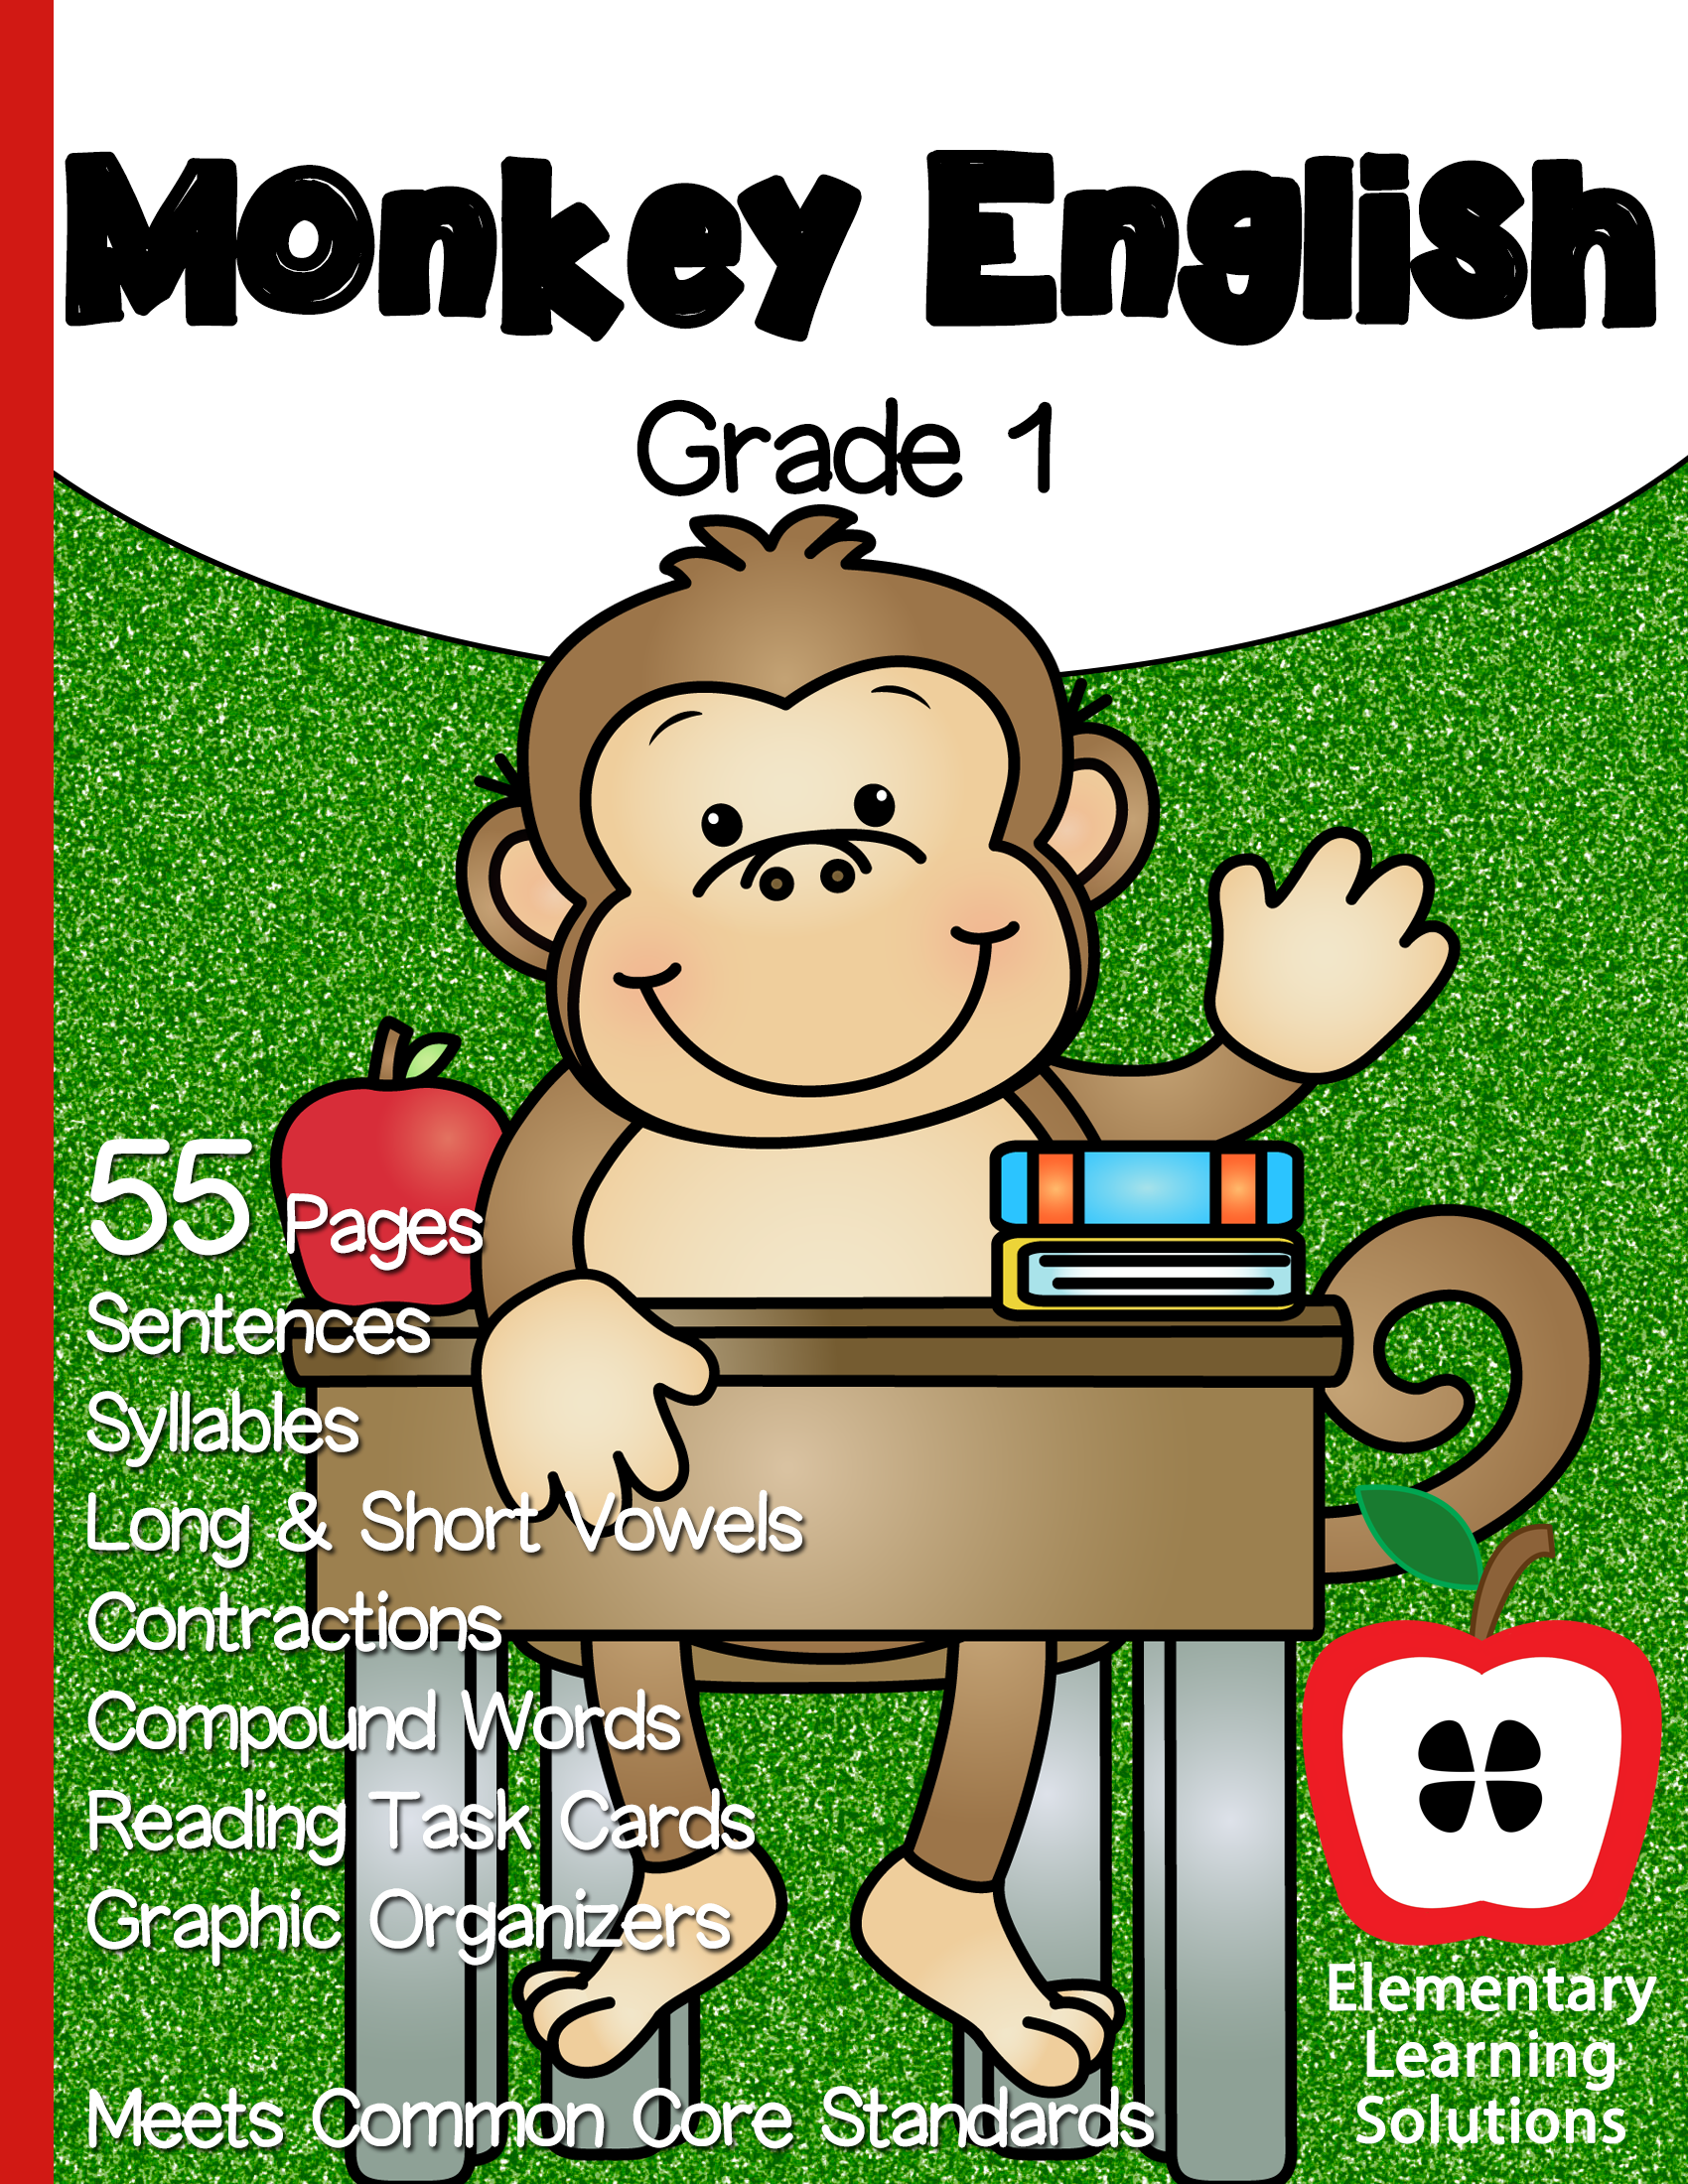 ELAR | Elementary Learning Solutions; 55 pages of learning ...